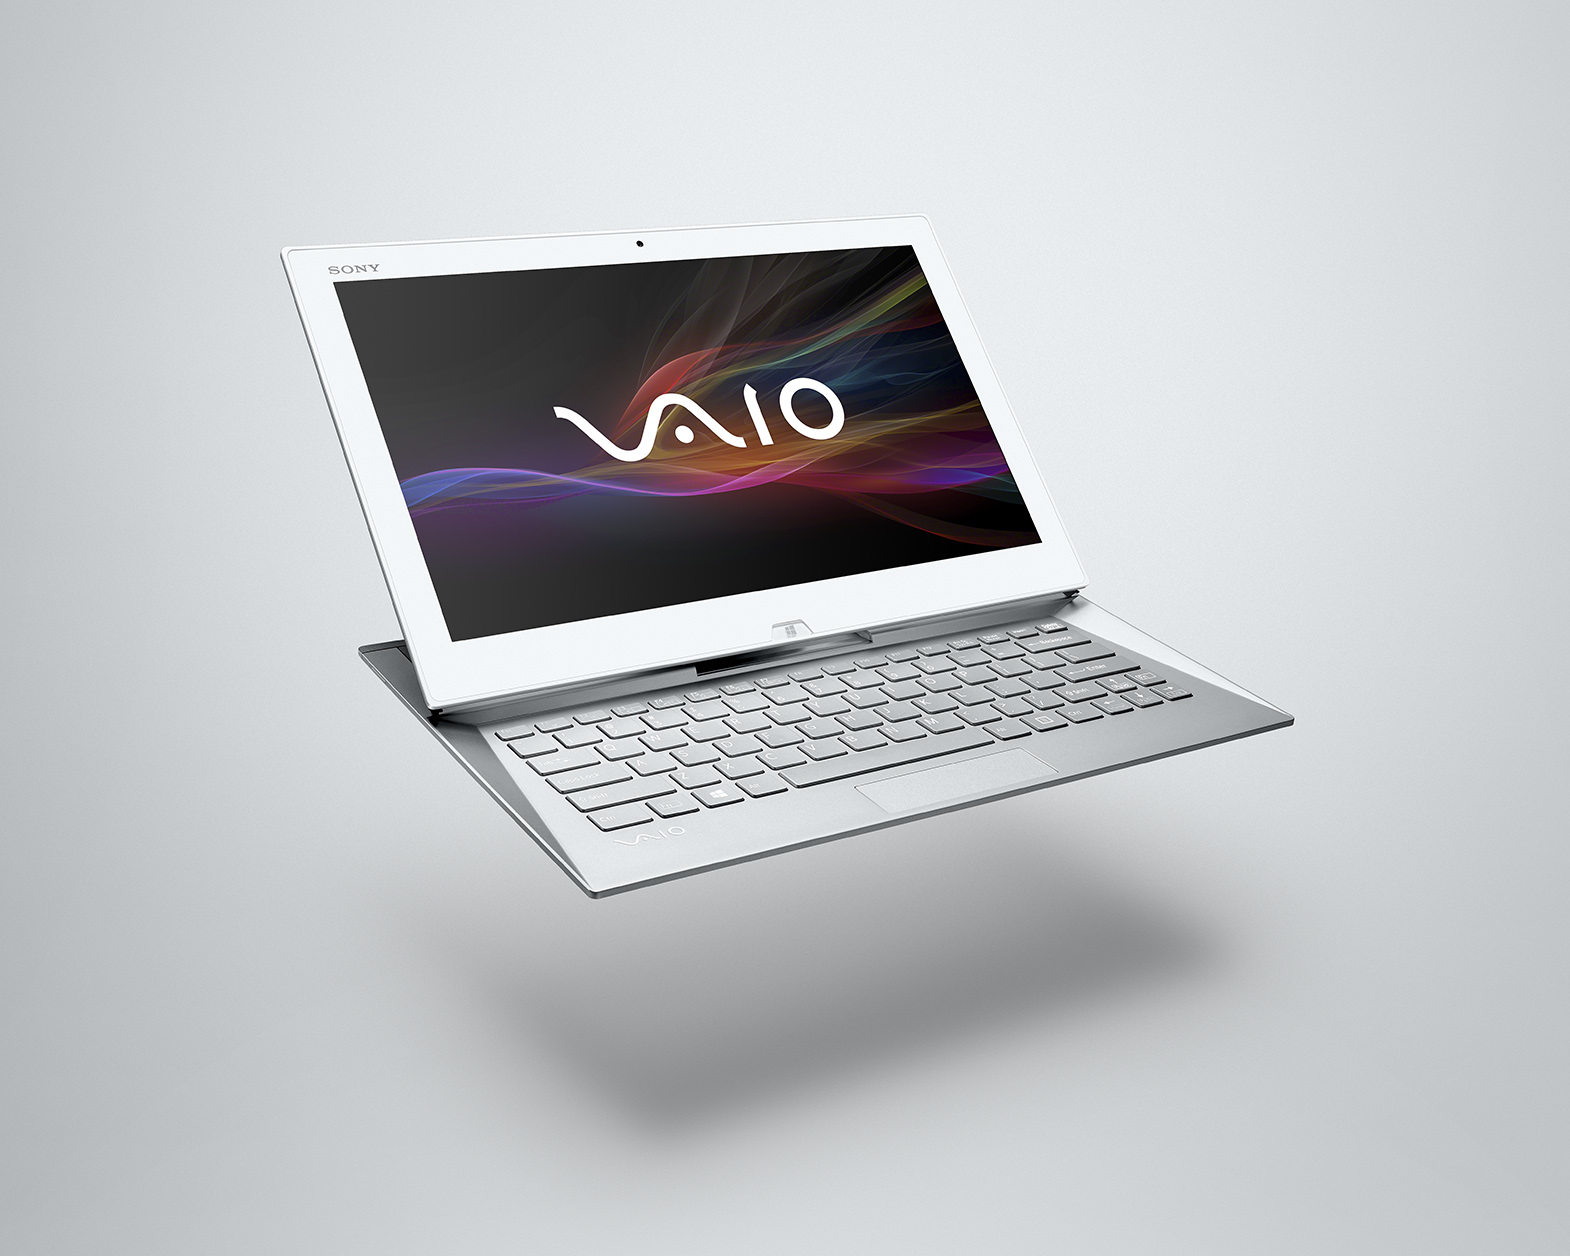 vaio_duo_open_mt_final_1570px